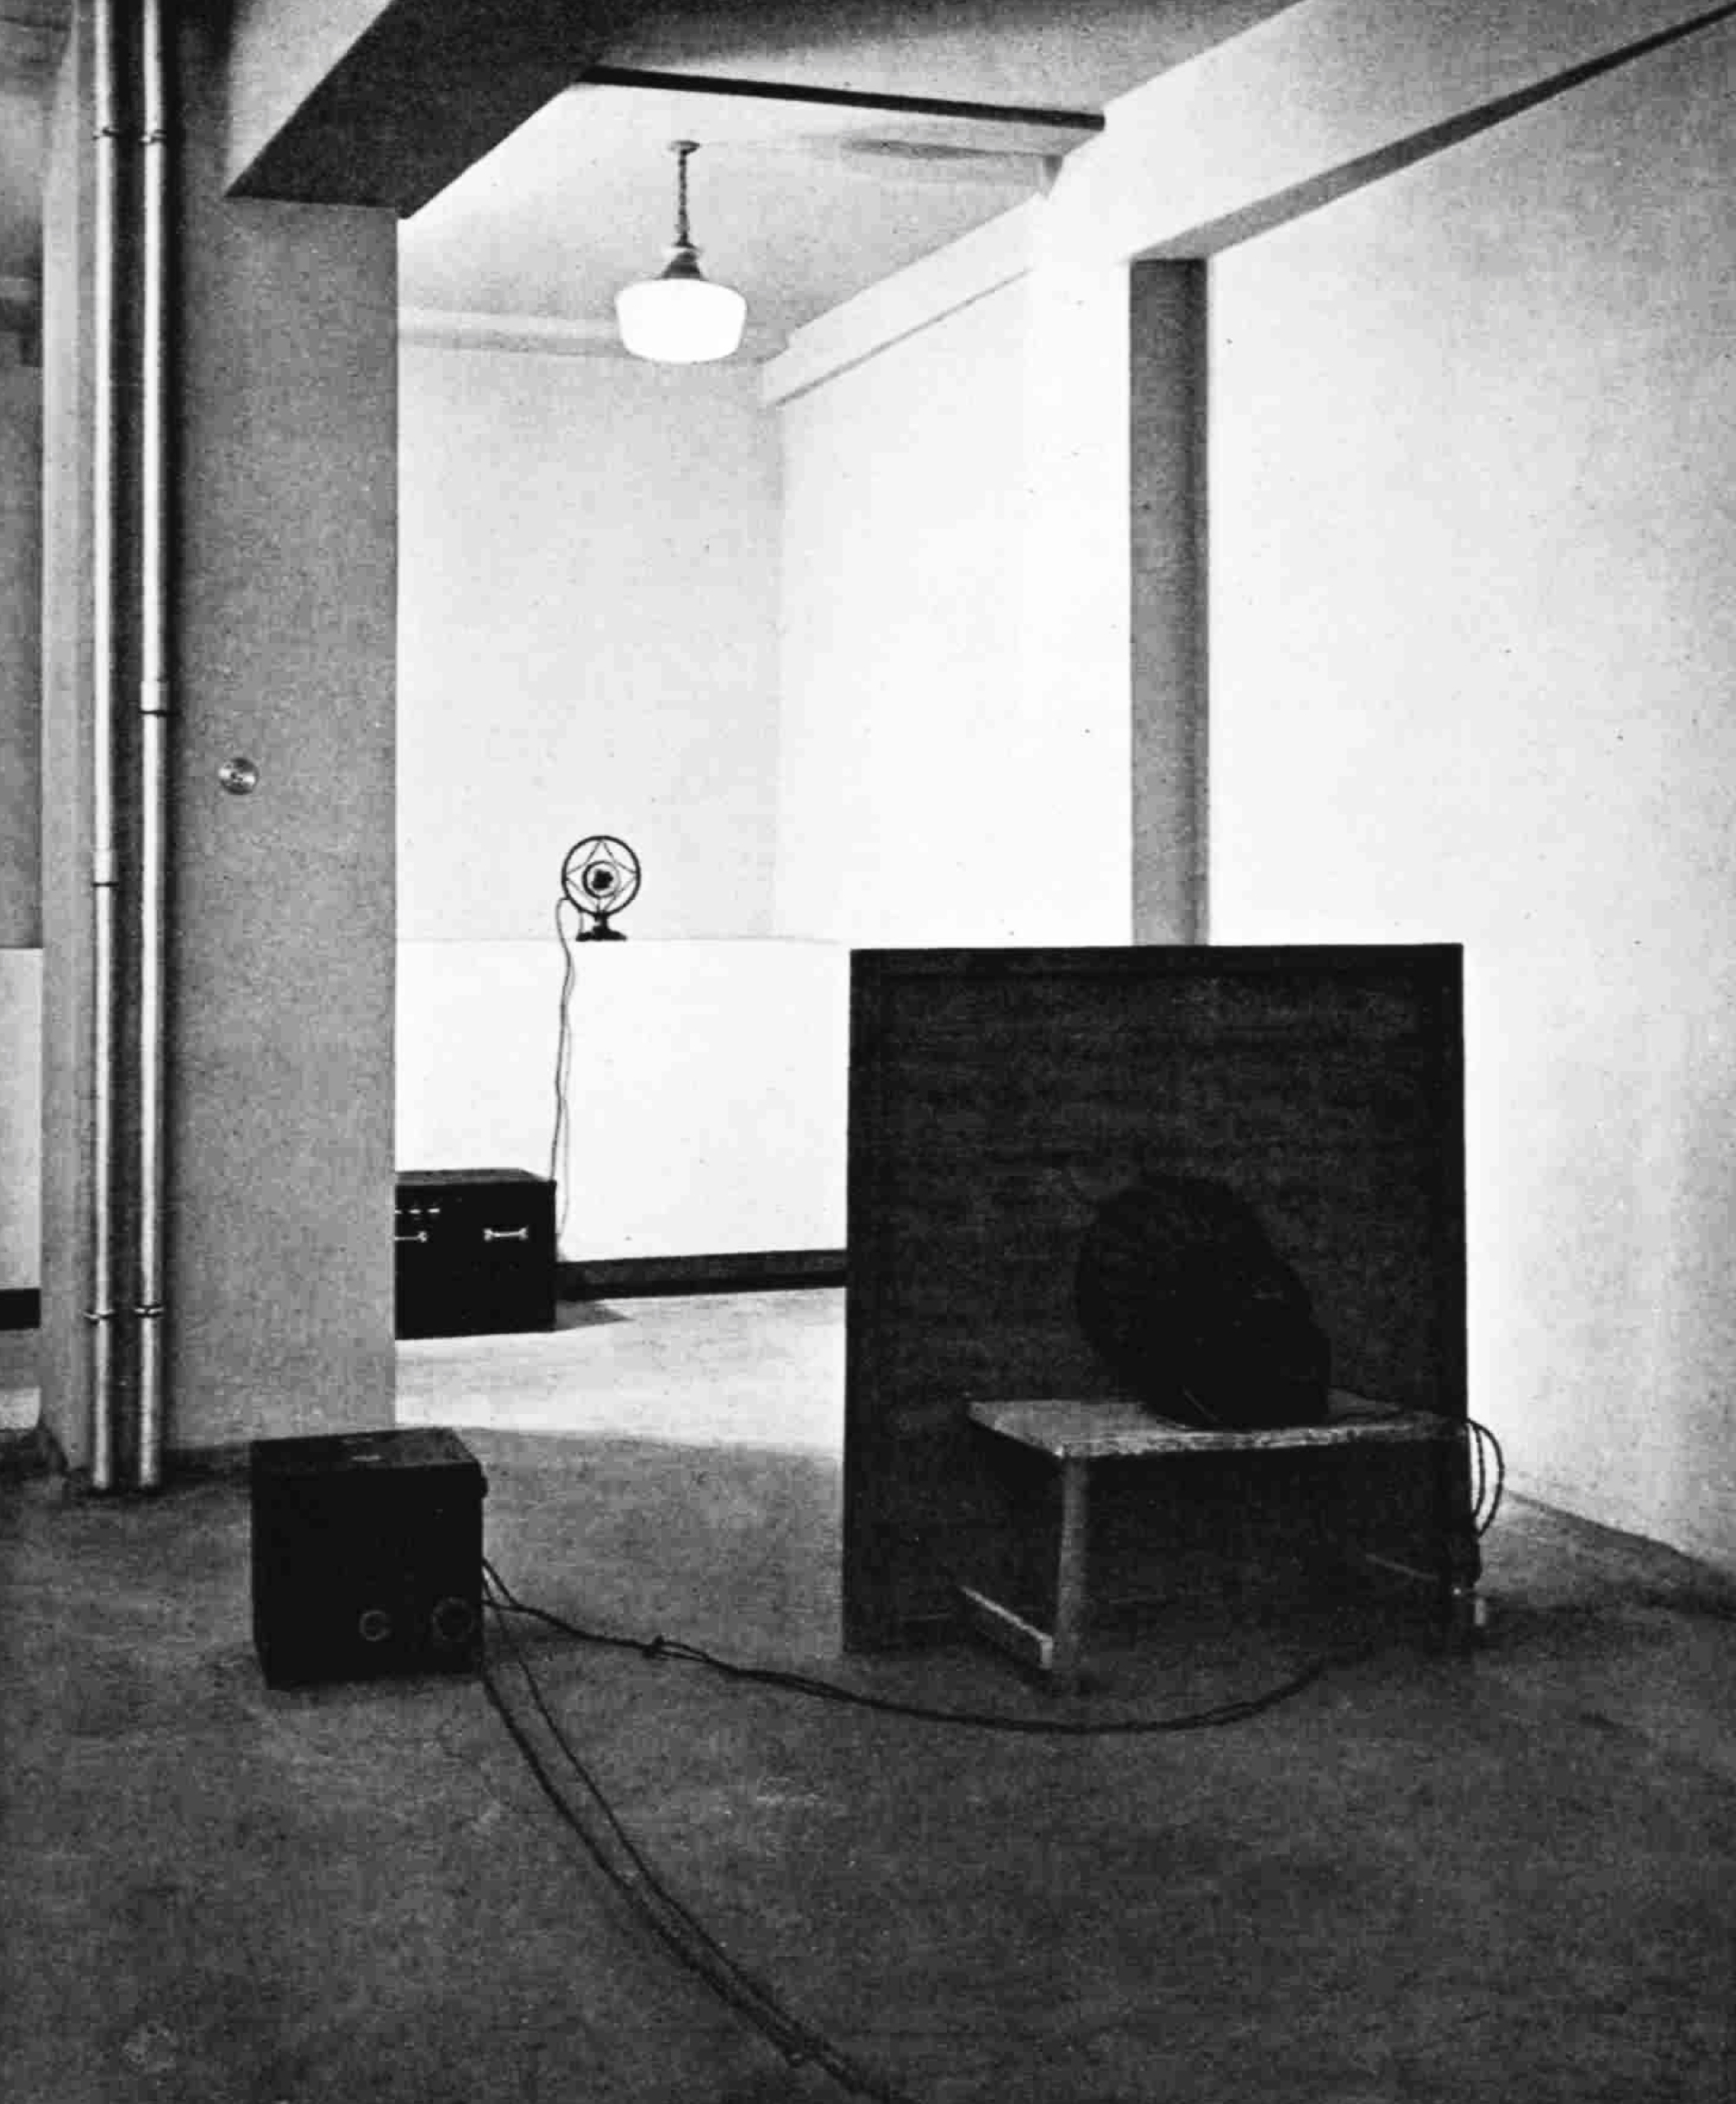 An empty space with a microphone and a large speaker